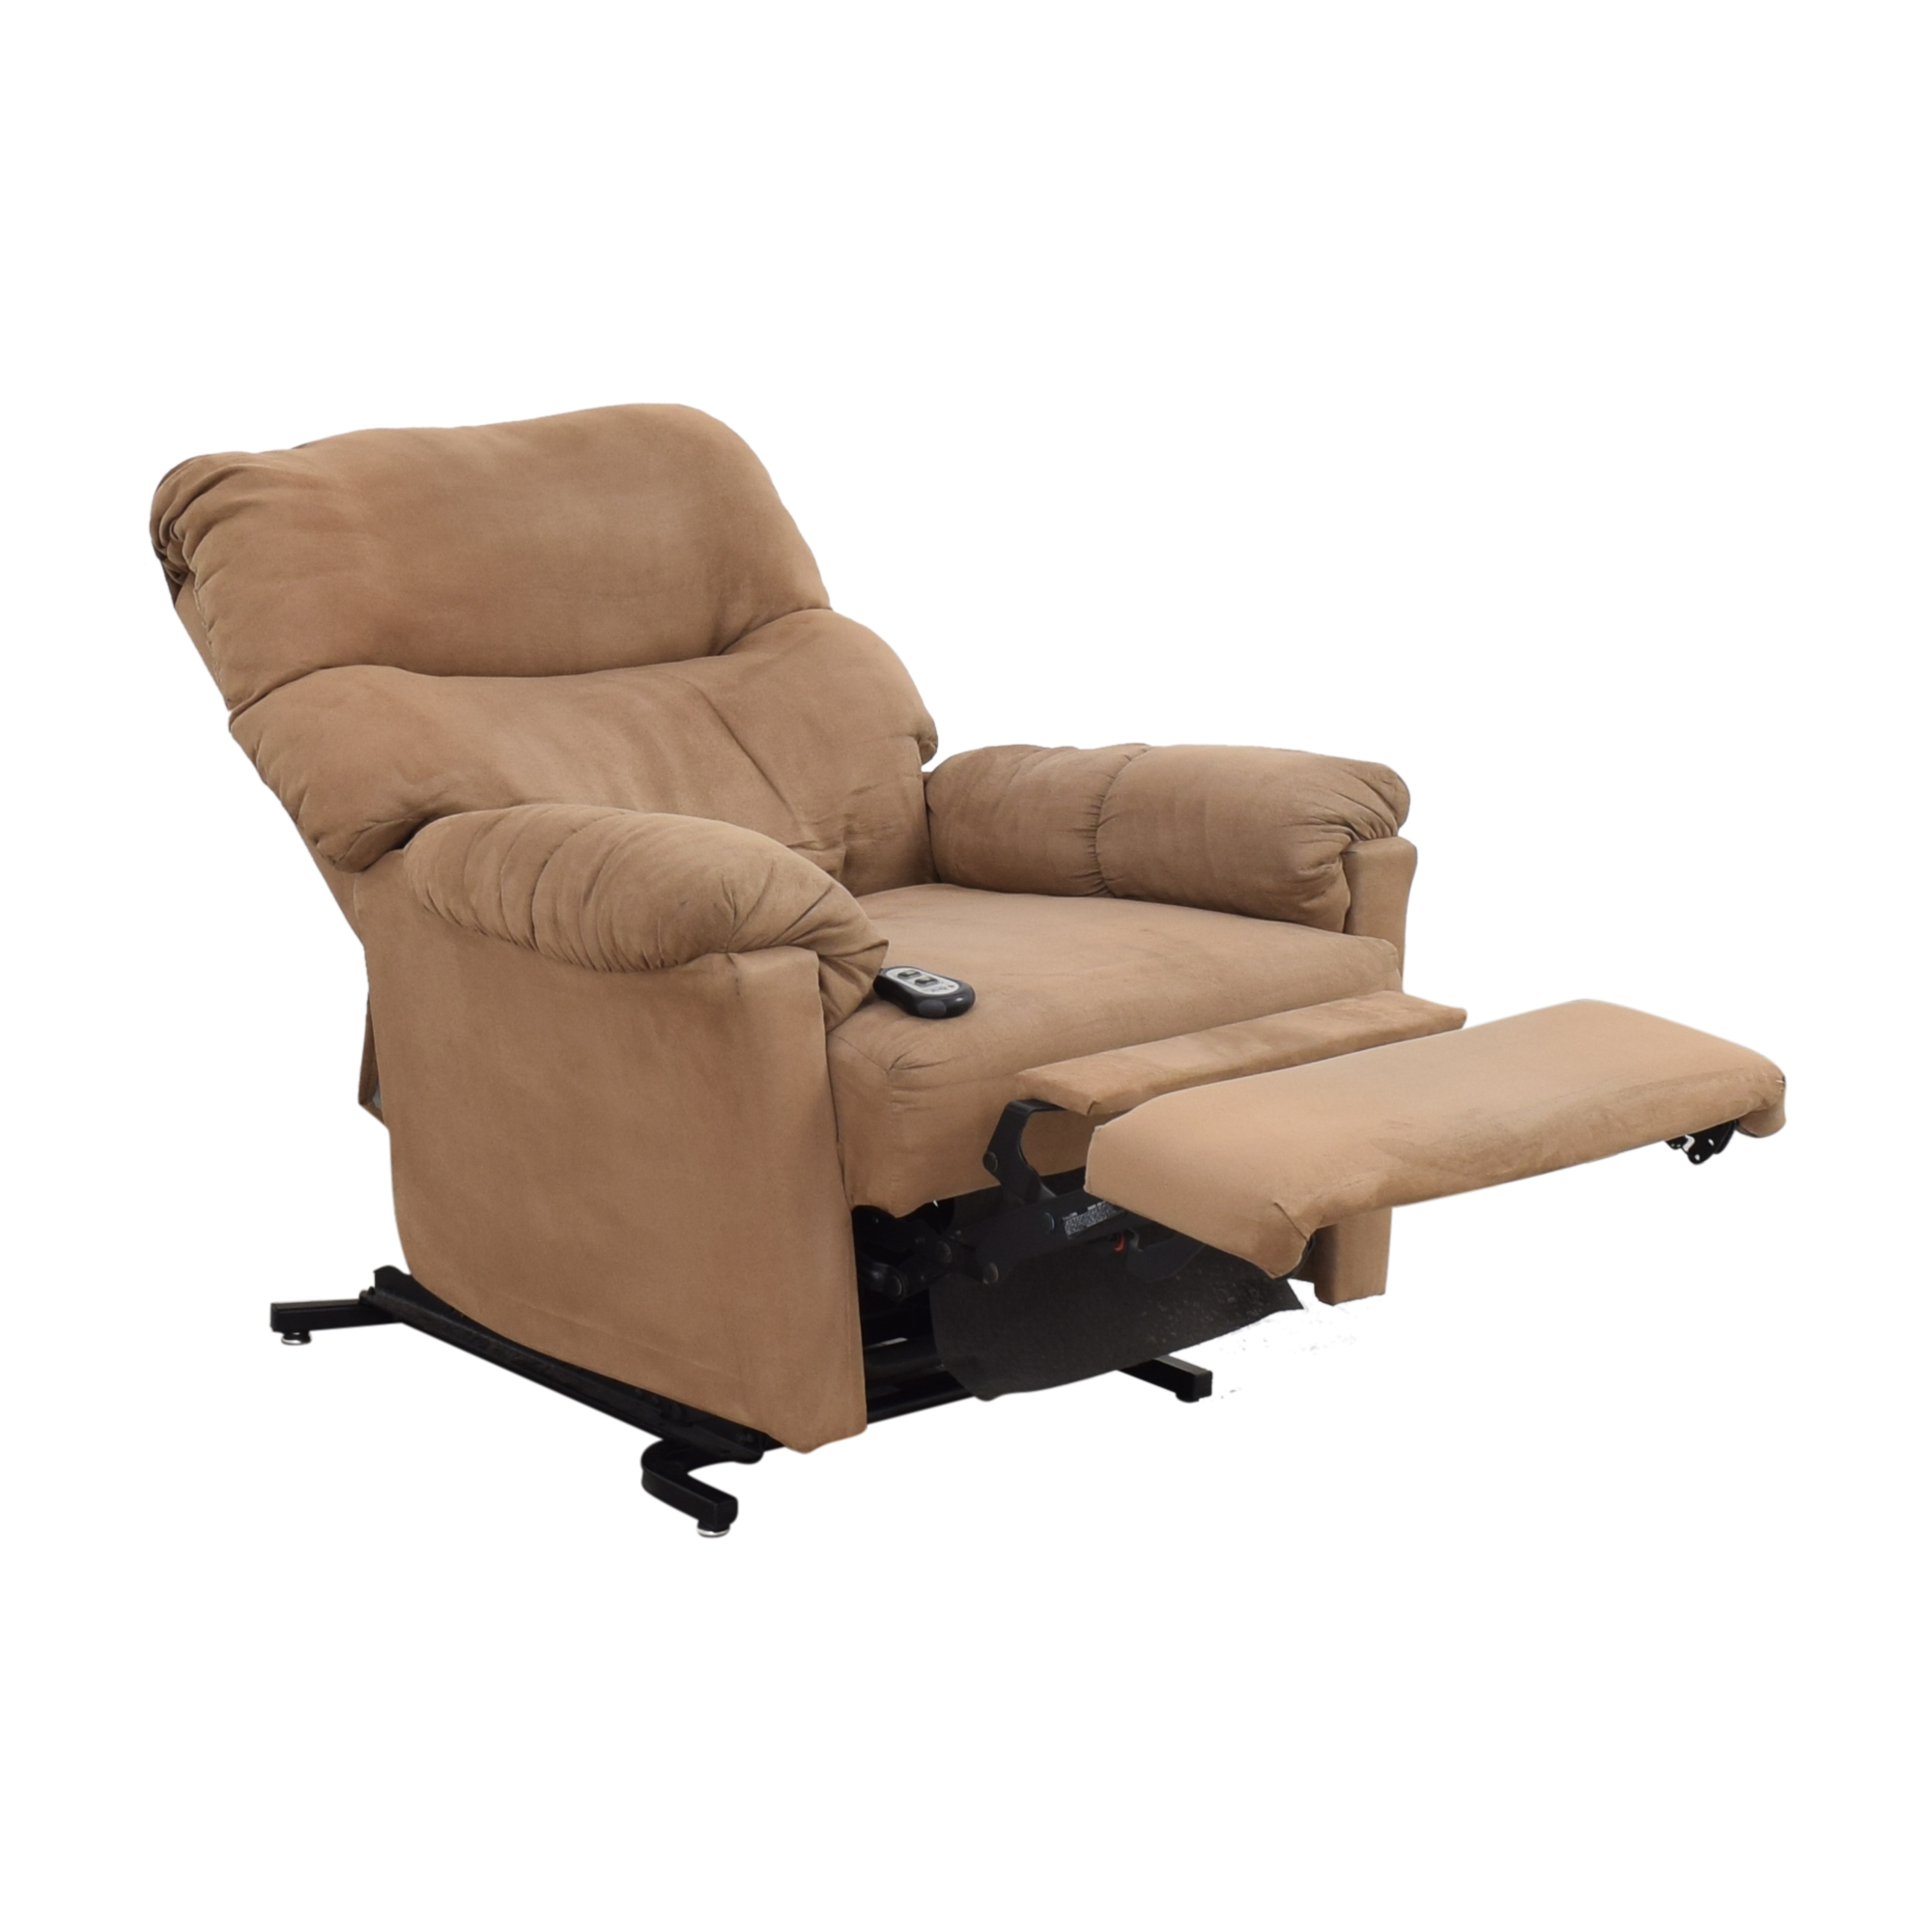 shop Best Chairs Recliner Best Chairs Recliners